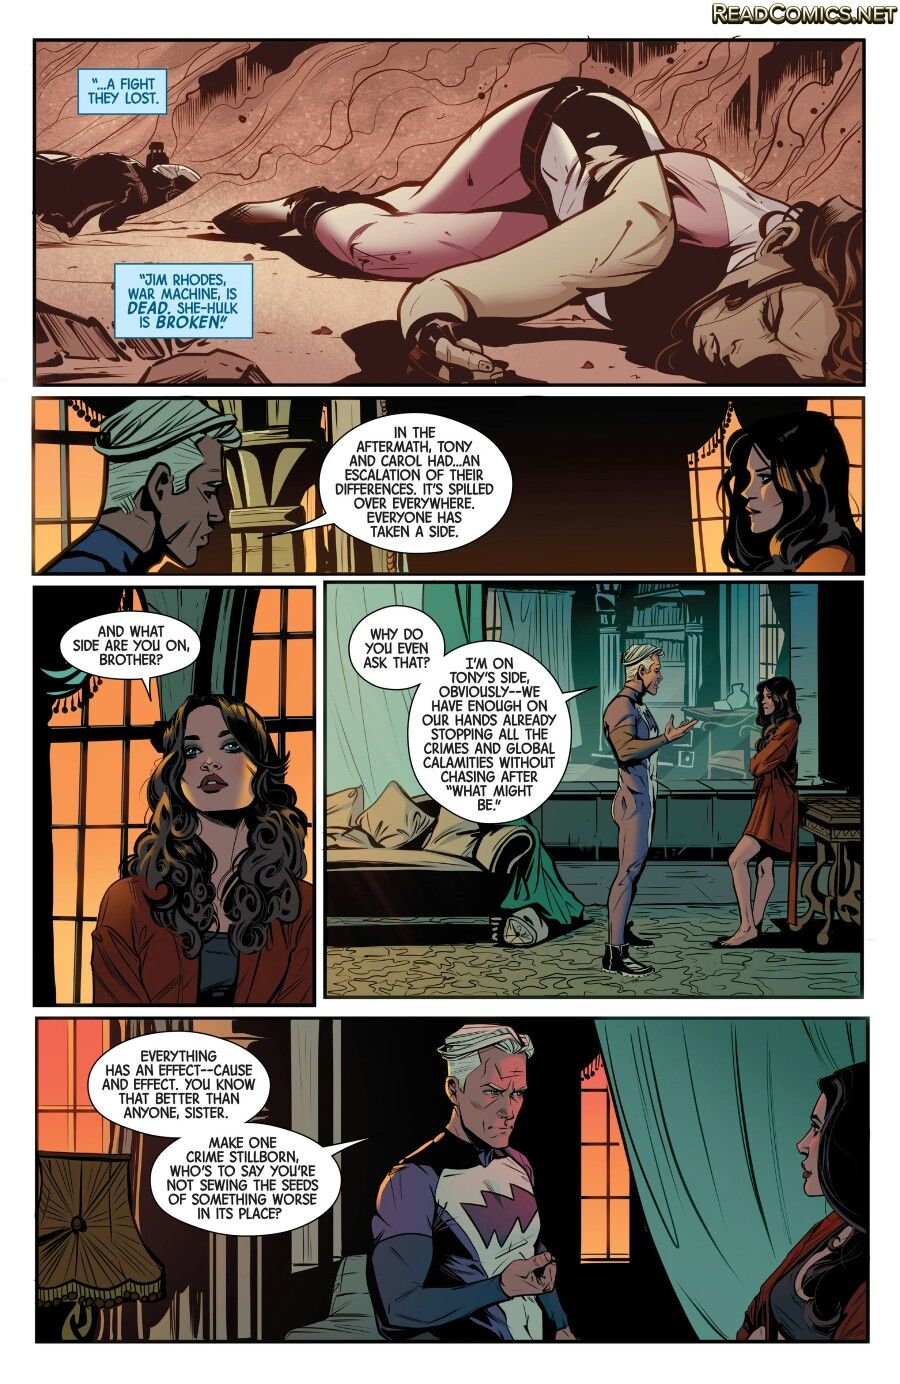 Wanda And Pietro Maximoff Talking About Civil War Scarlet Witch Marvel Scarlet Witch Comic Black Widow Avengers